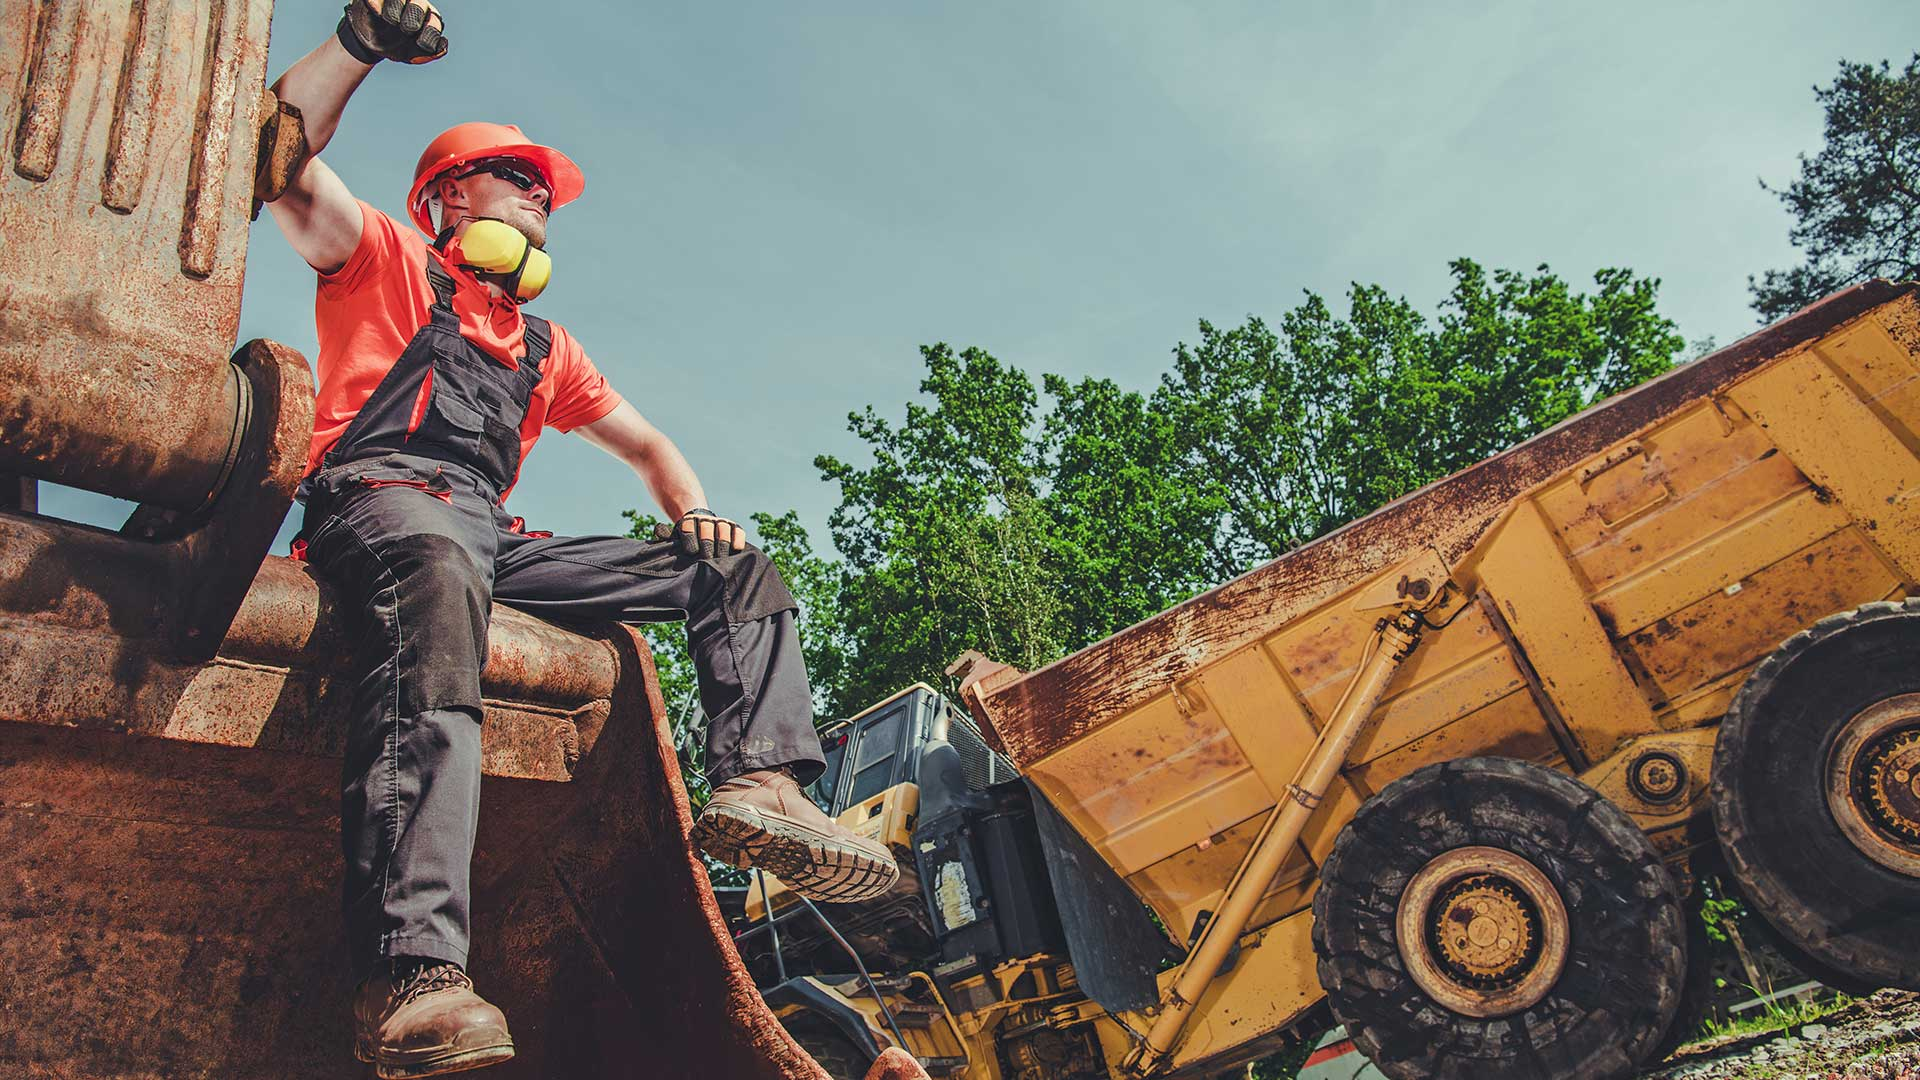 Heavy Equipment Owner Operator sitting on heavy equipment